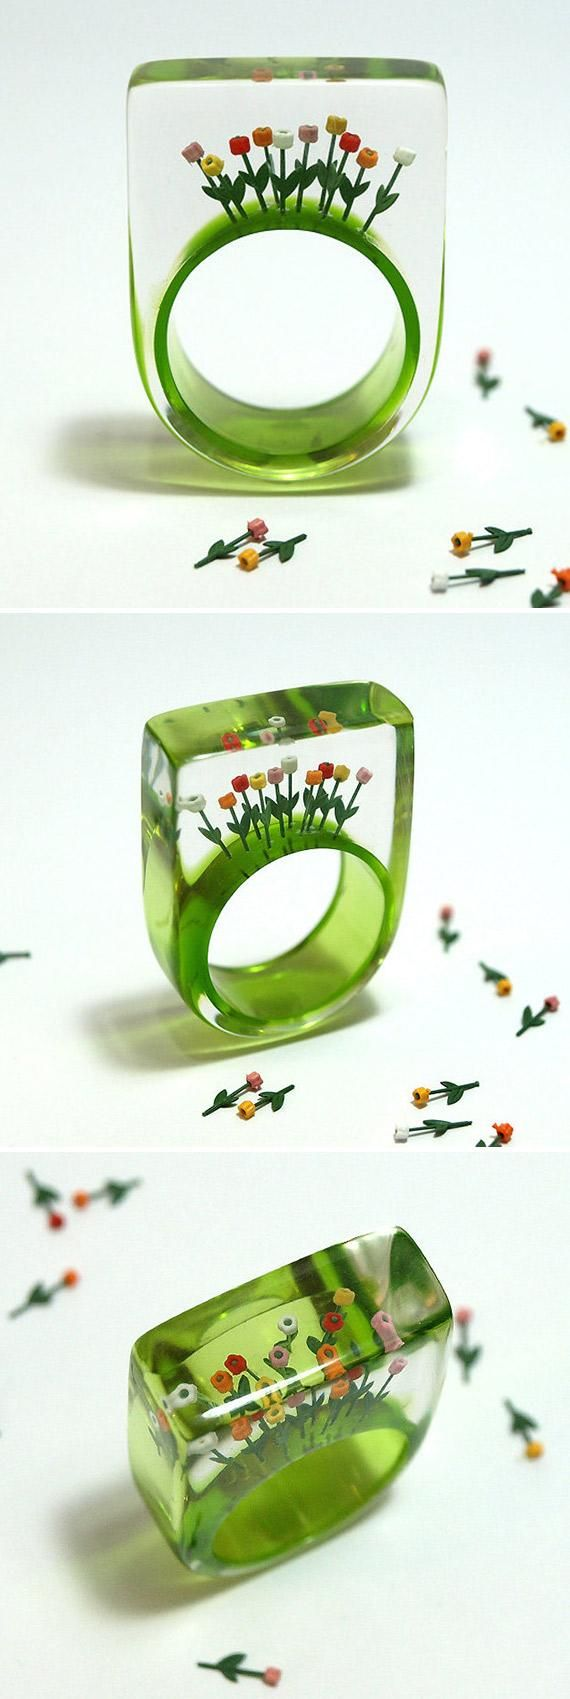 GeschmeideUnterTeck's resin ring lets you wear a garden of ten tiny tulips on your finger via etsy.